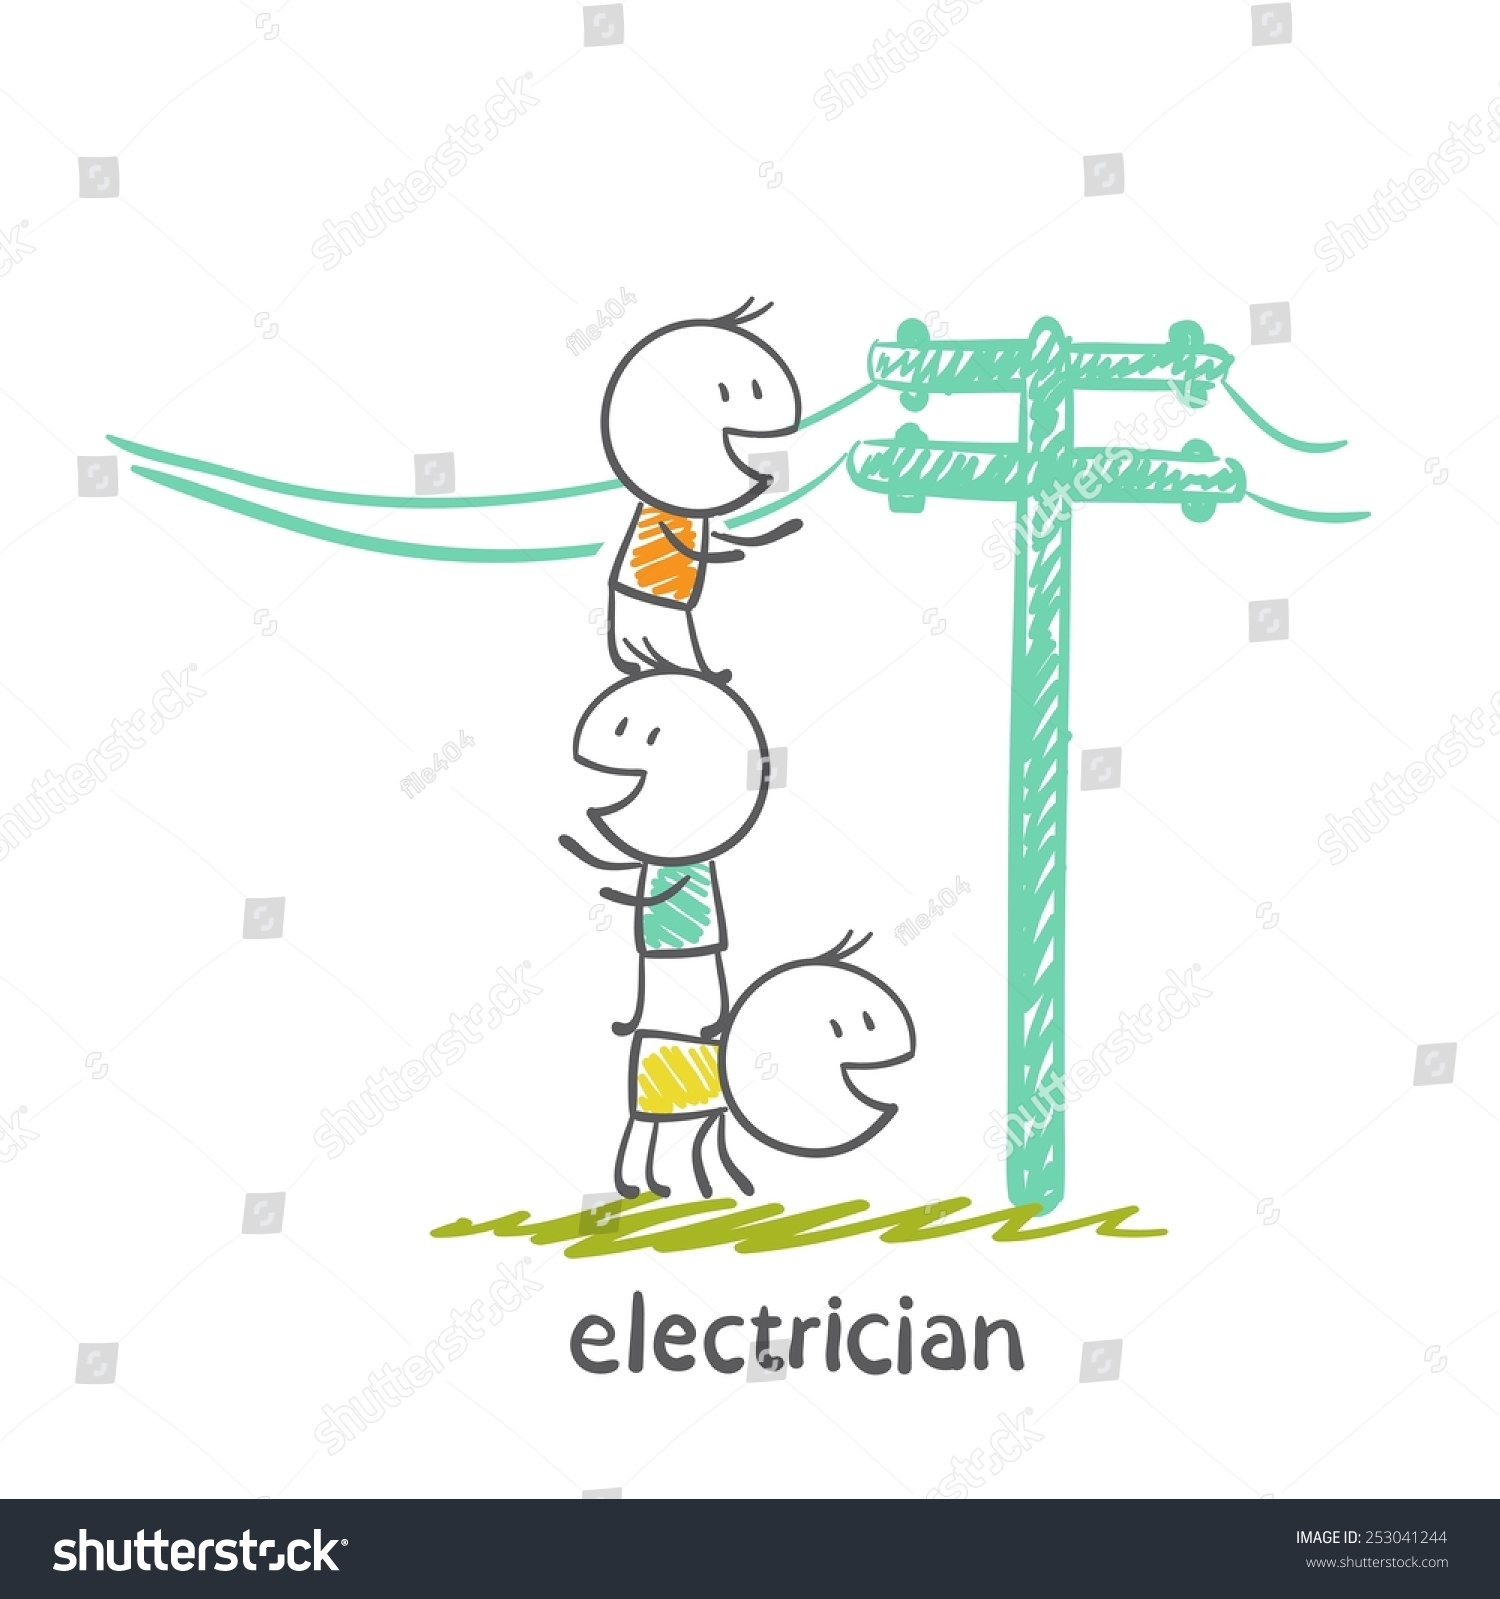 hight resolution of electrical repair electrical wiring in the street illustration